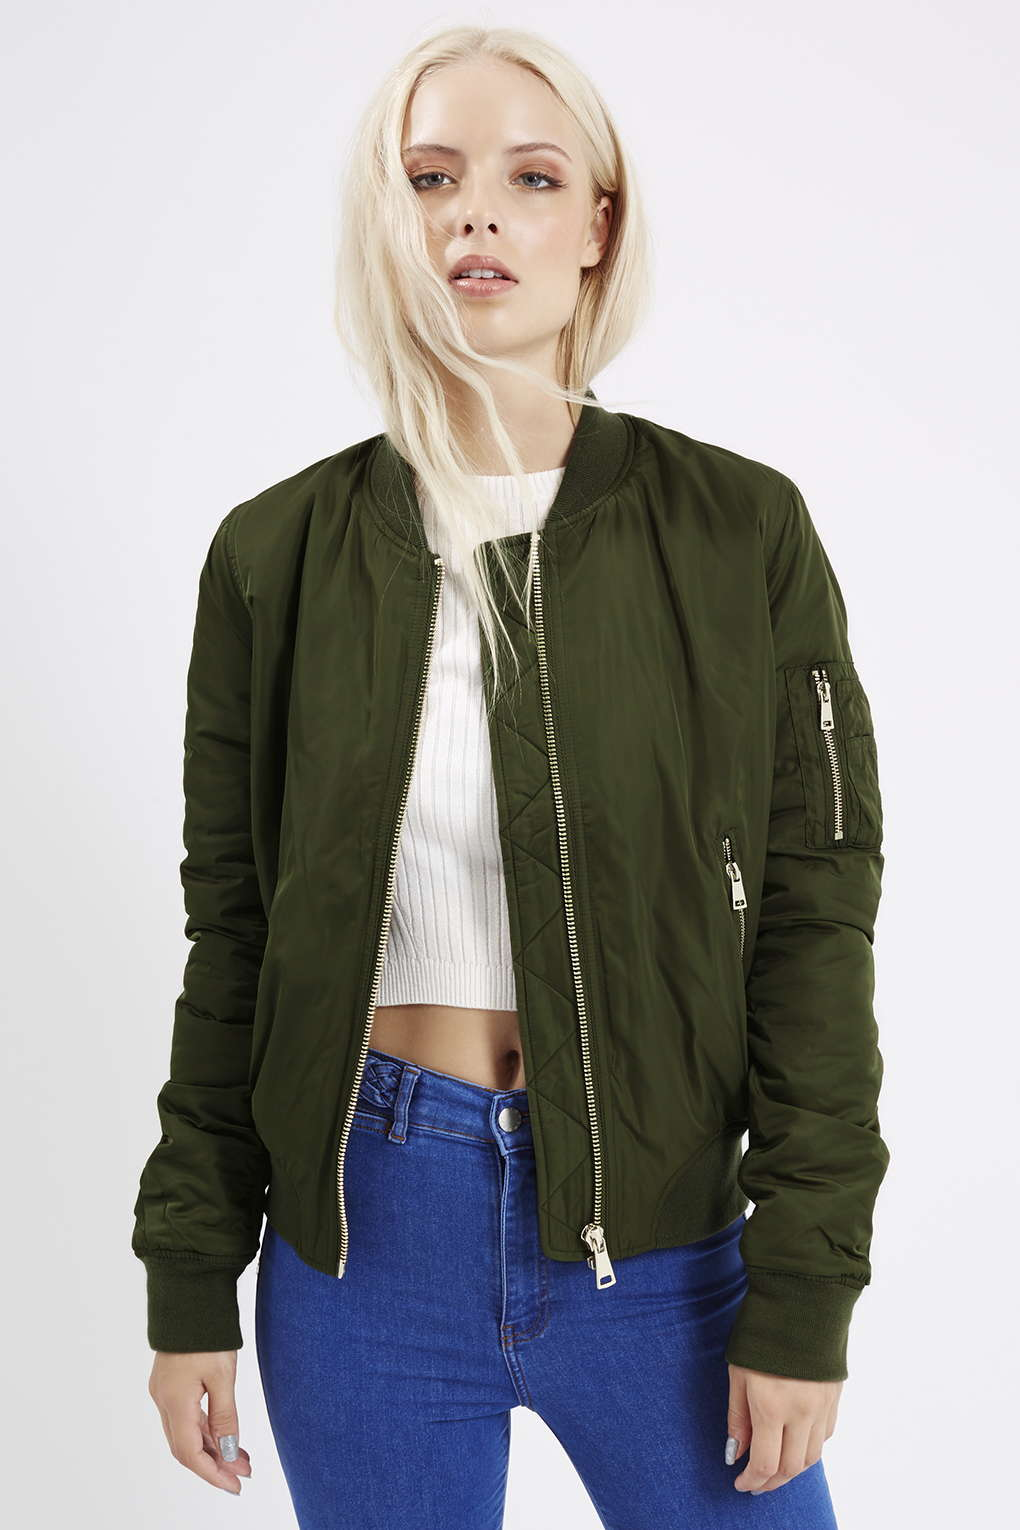 Bomber Jackets for Spring - Topshop MA1 Bomber Jacket